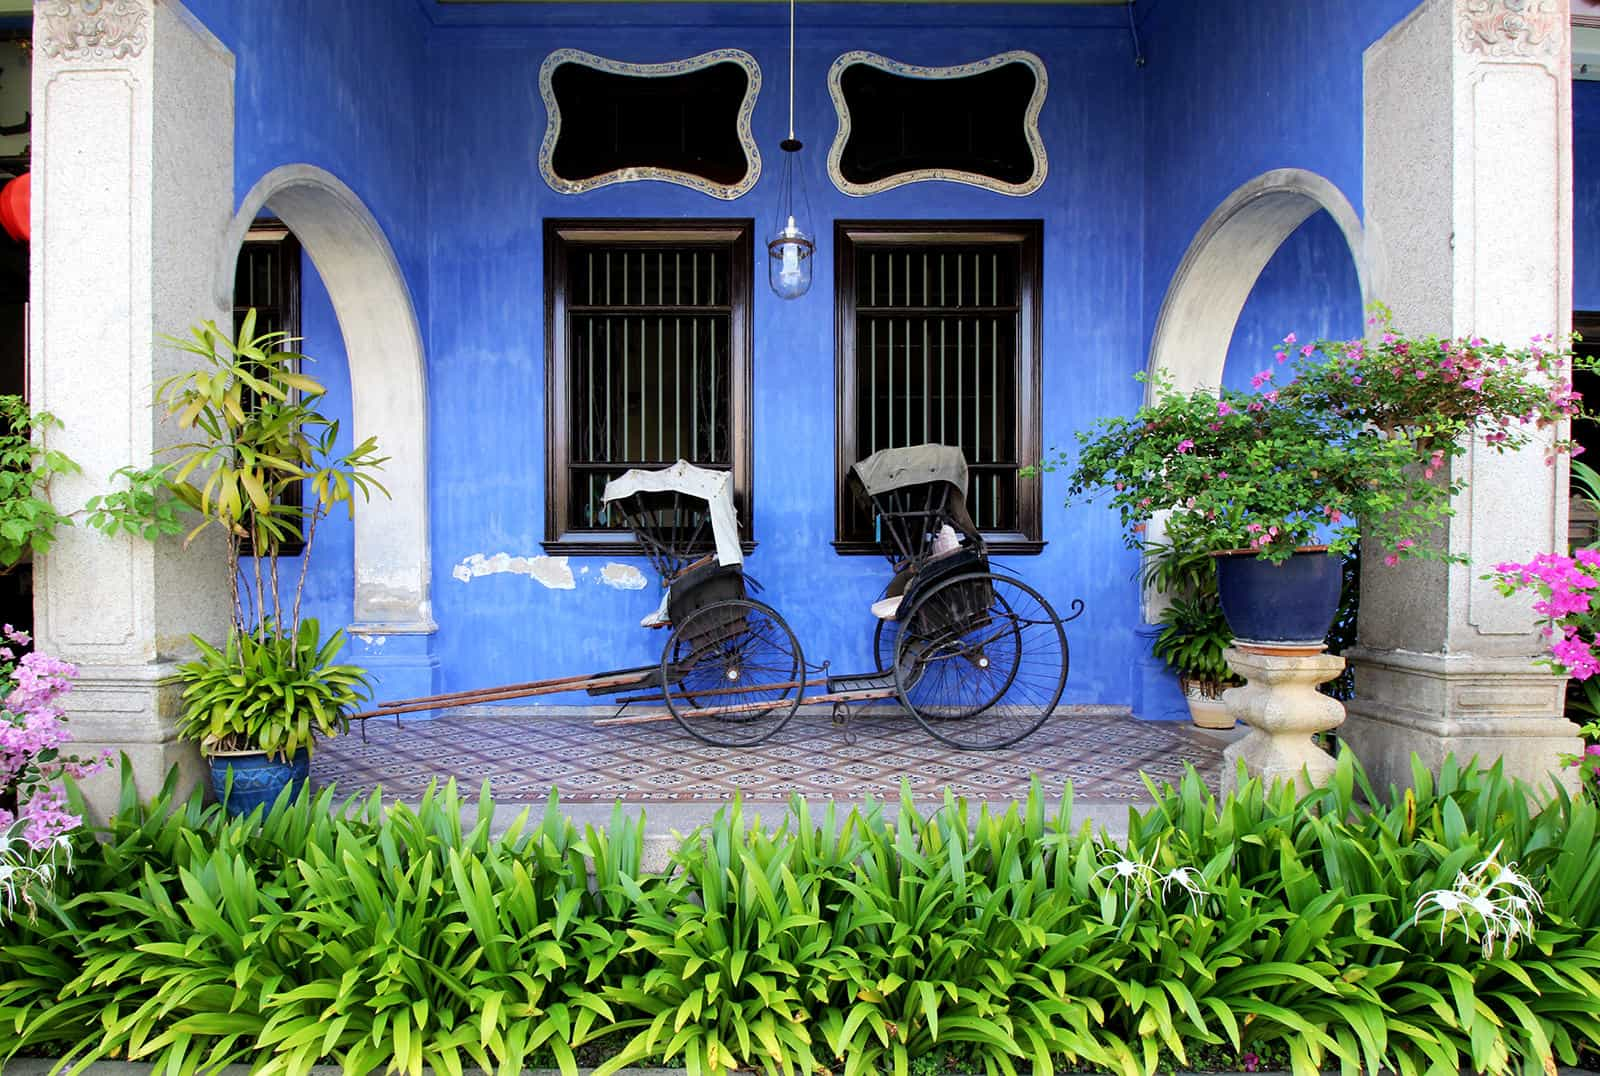 boutique-hotel-penang-island-blue-mansion-architecture-06-1_x4vh6i Courtyard